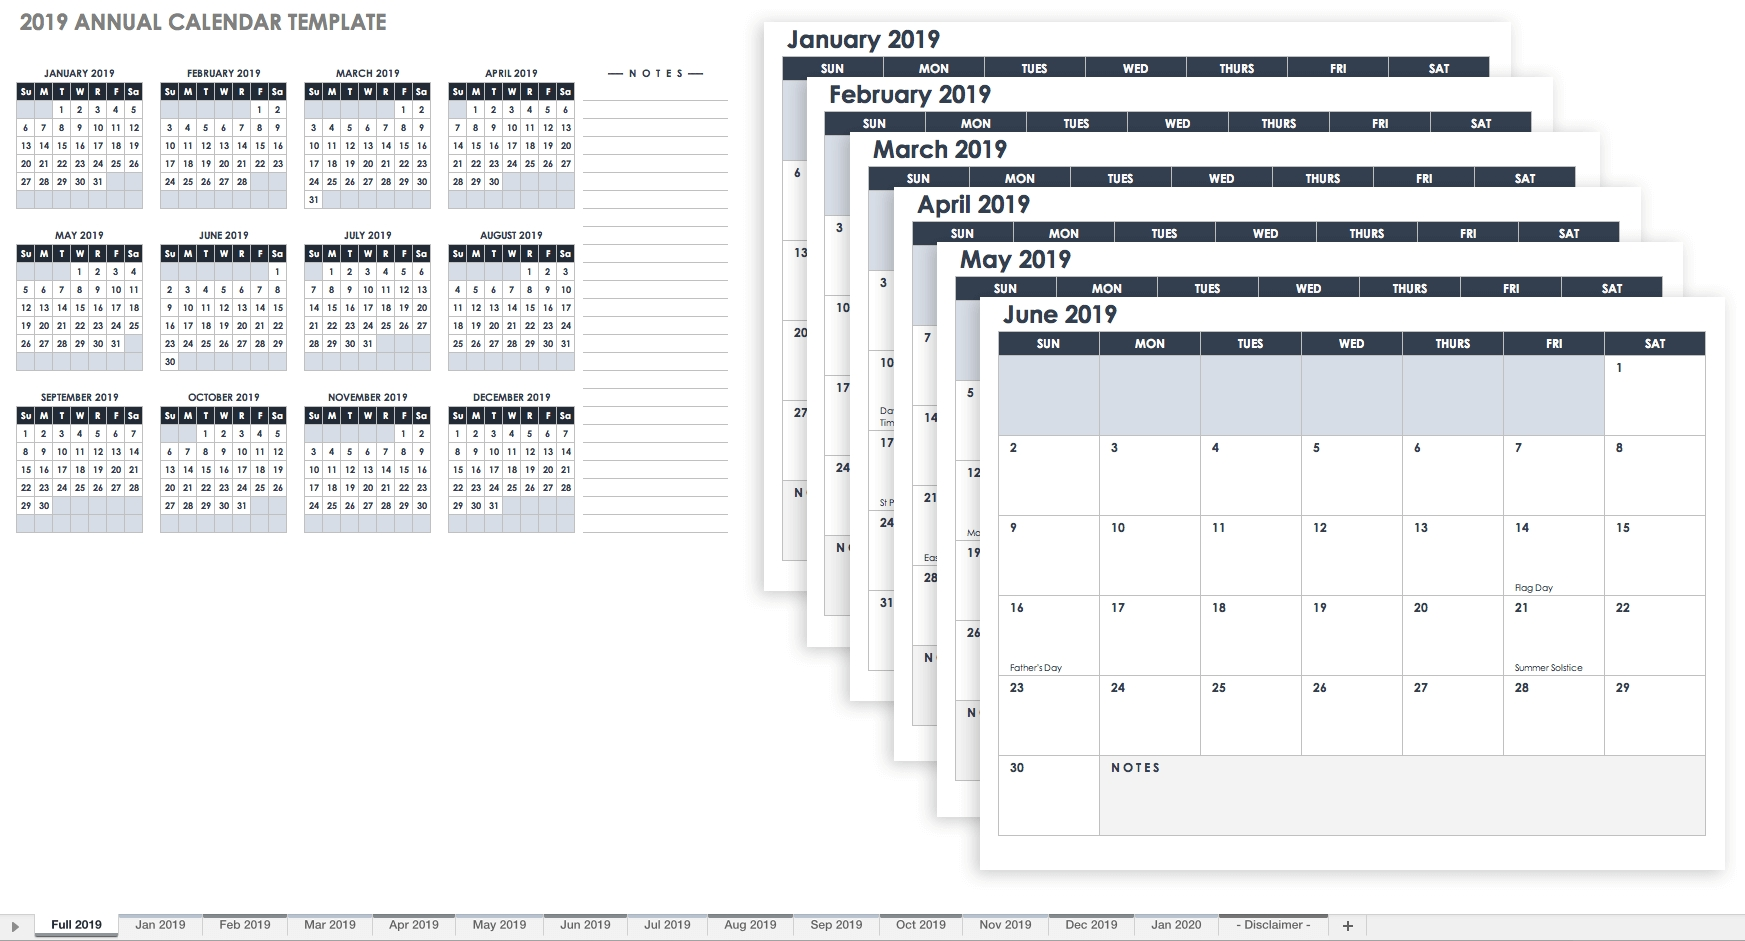 15 Free Monthly Calendar Templates | Smartsheet intended for Blank Printable Calendar By Month With Notes